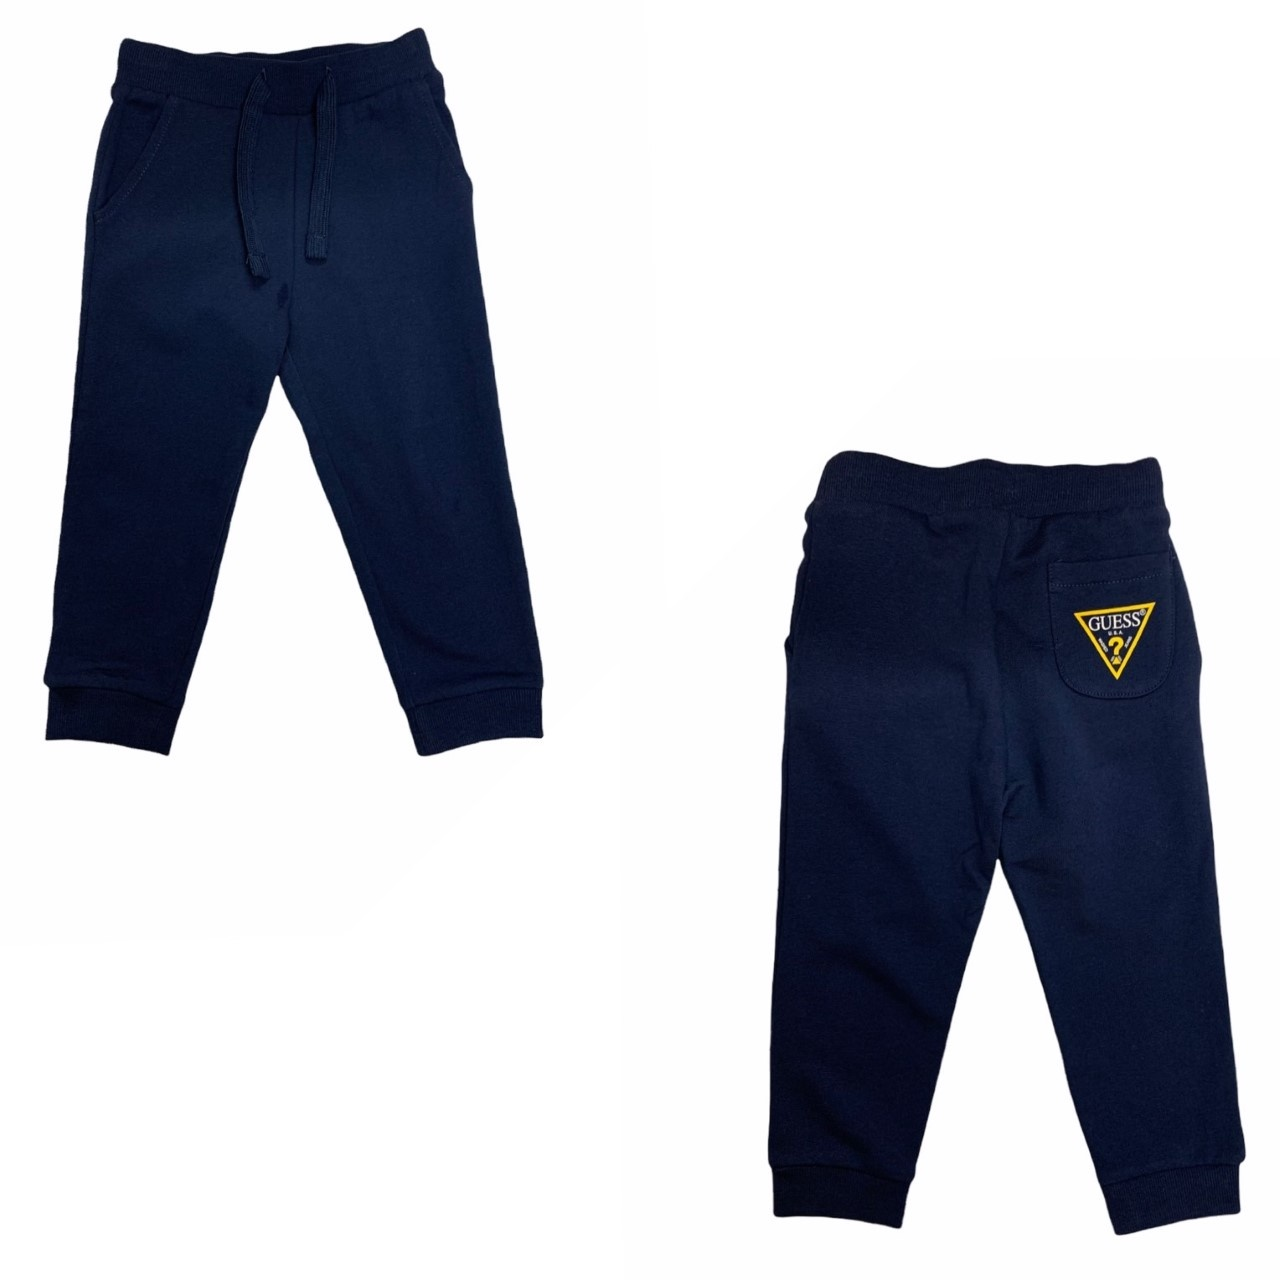 Guess Guess Navy Logo Joggers - C765 AW21